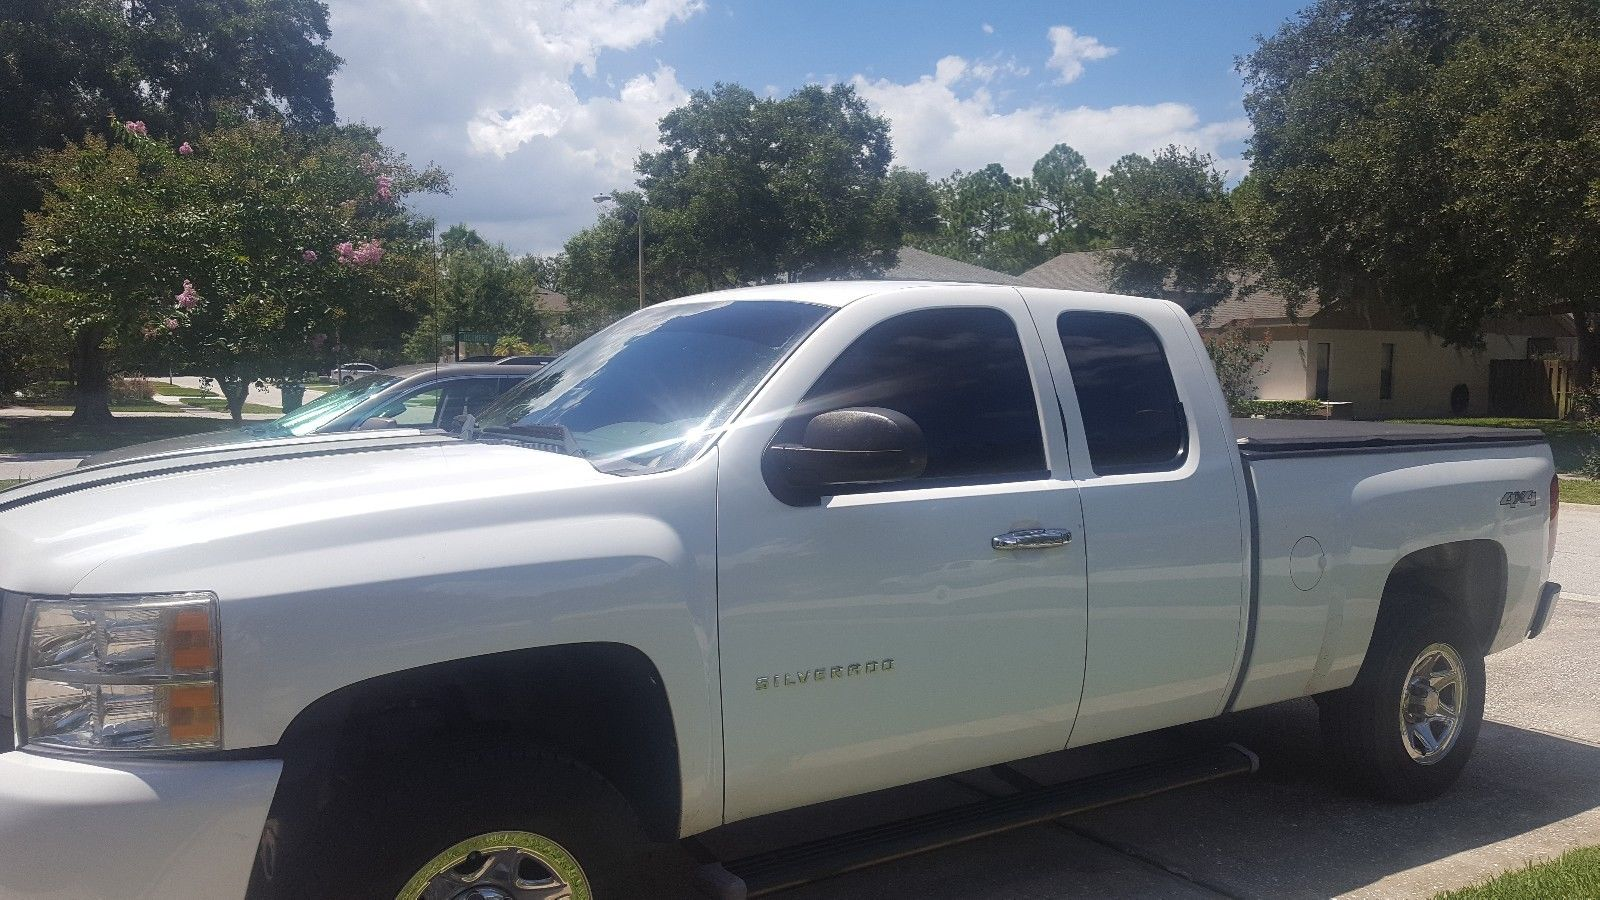 serviced 2010 Chevrolet Silverado 1500 WT lifted